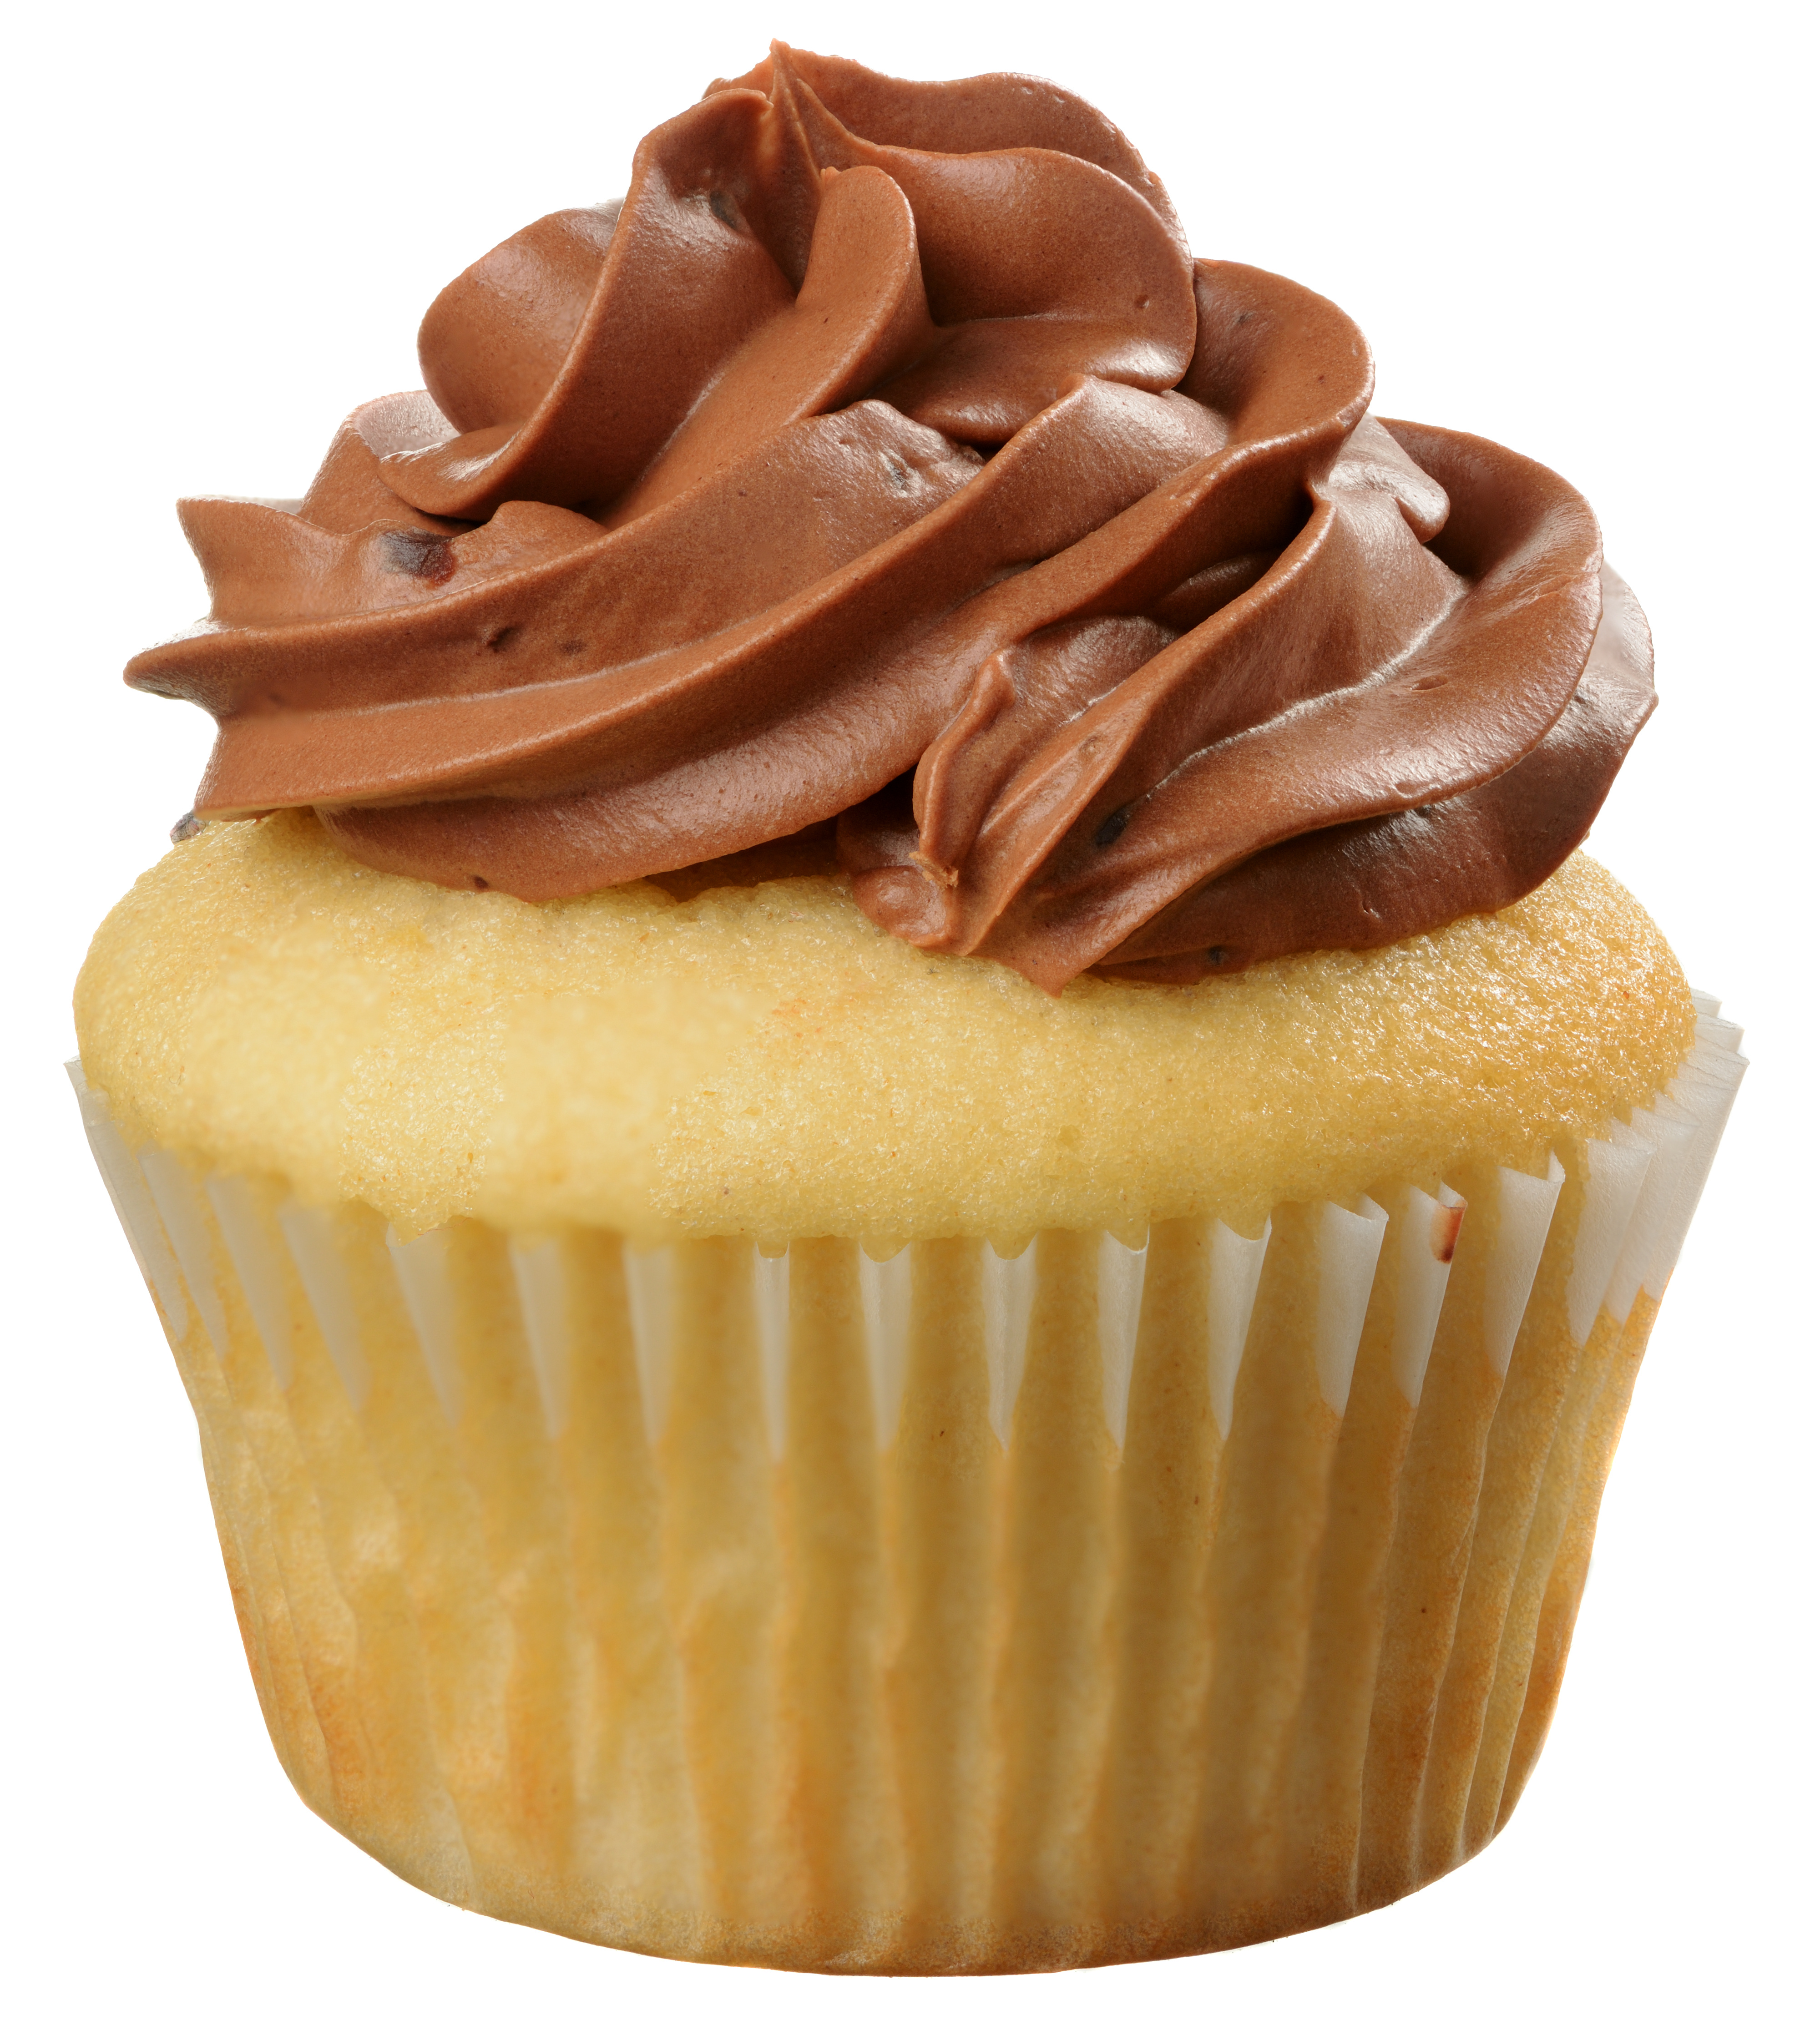 Delicious Marble Cupcake with Chocolate Swirled Frosting Isolated